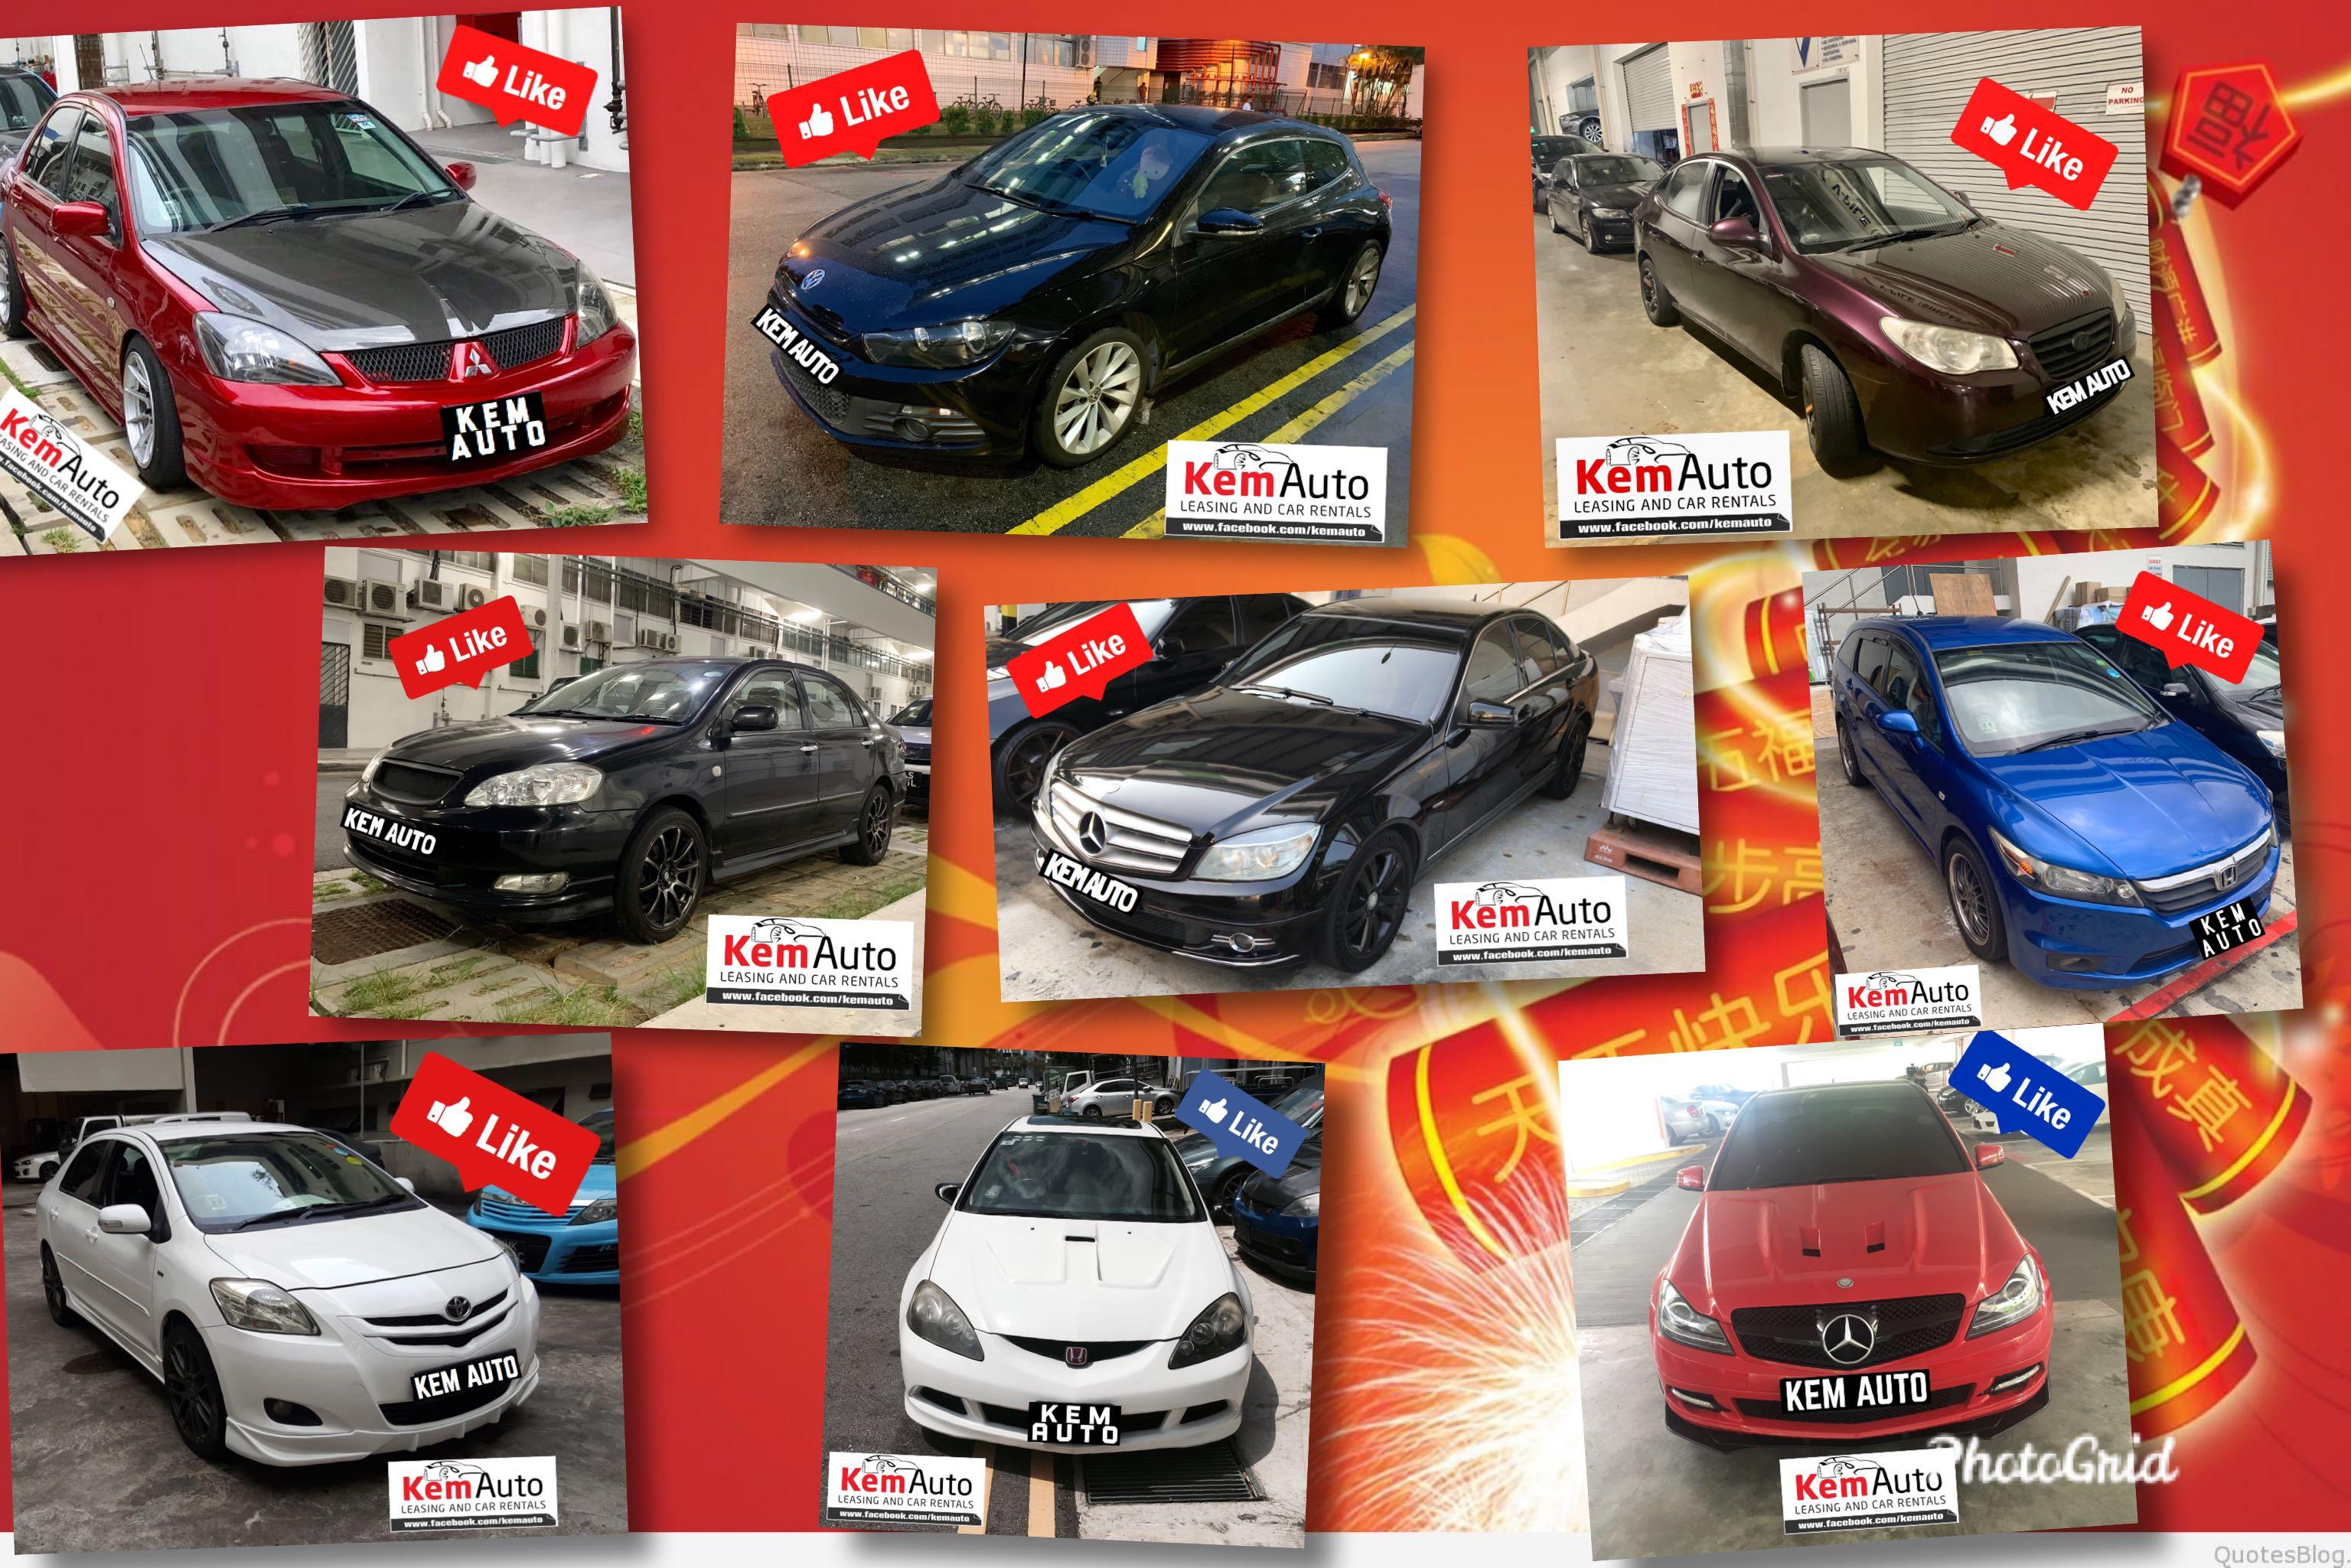 CNY sporty modded cars & family sedan MPV for CHinese New Year 2020 rental package (Honda civic integra Stream Mitsubishi Lancer cs3 Ex Toyota Estima previa Kia Forte Avante)